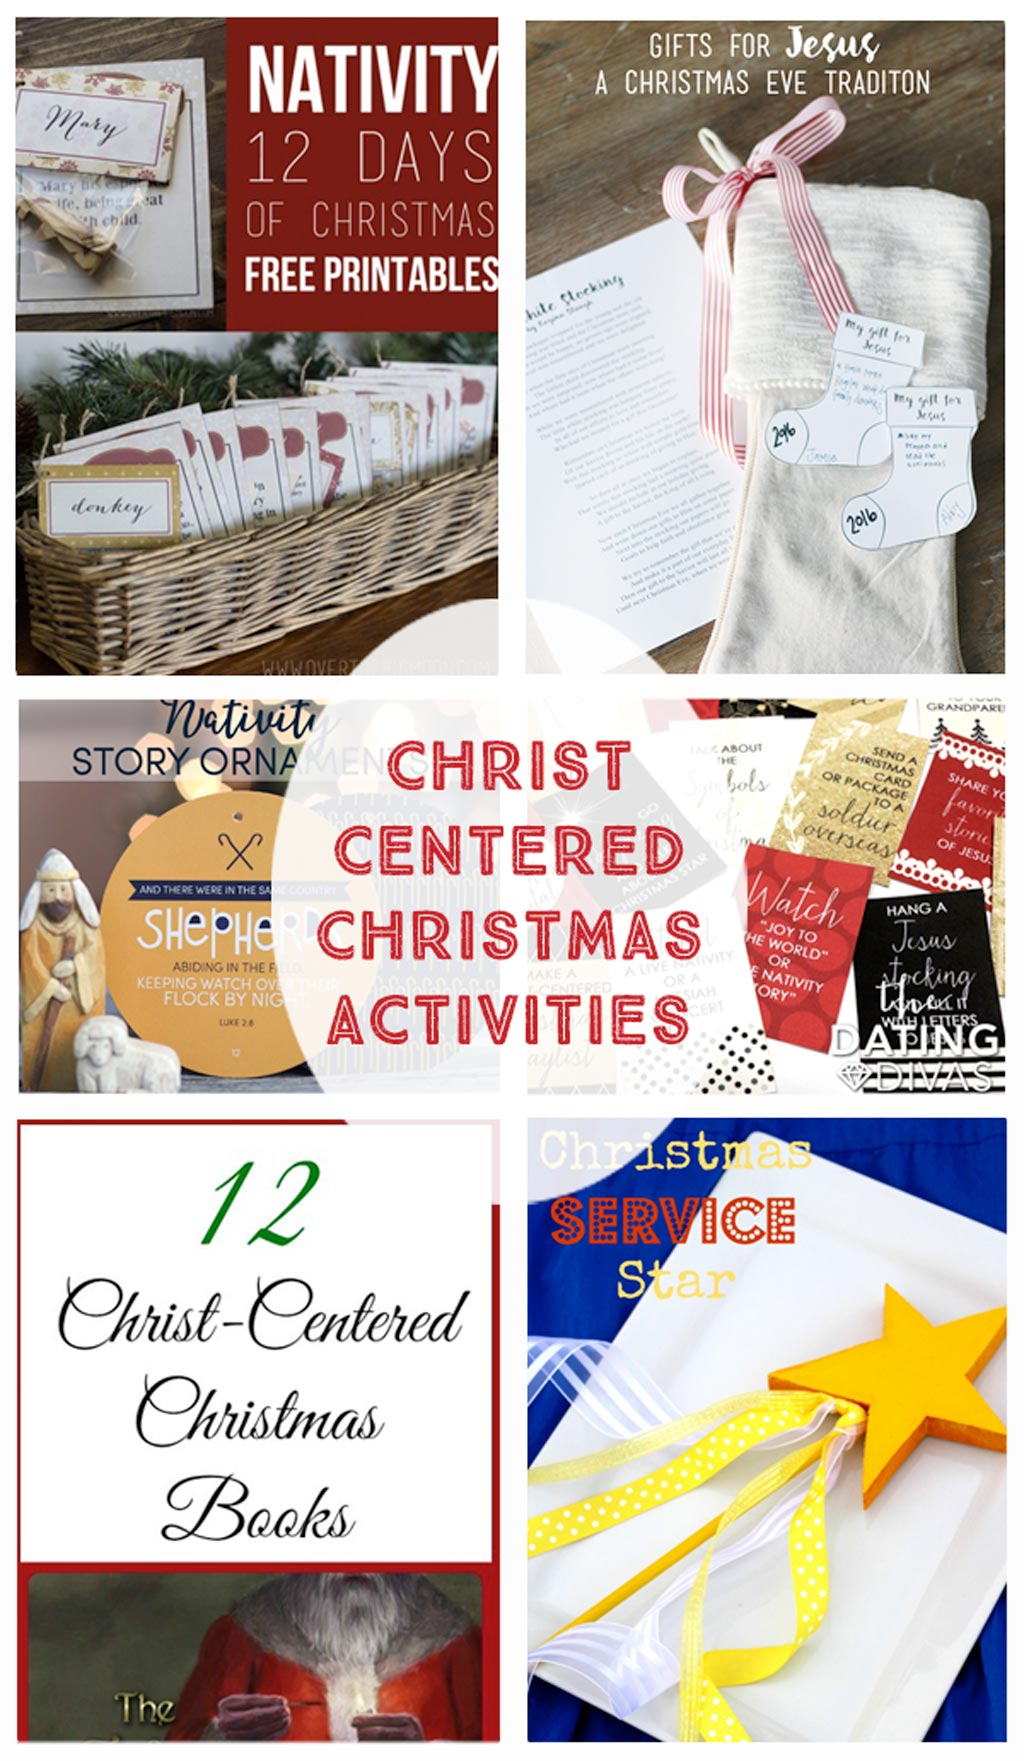 Christ Centered Christmas Activities - Printables, ornaments, service ideas, gift ideas and activities for the whole family.